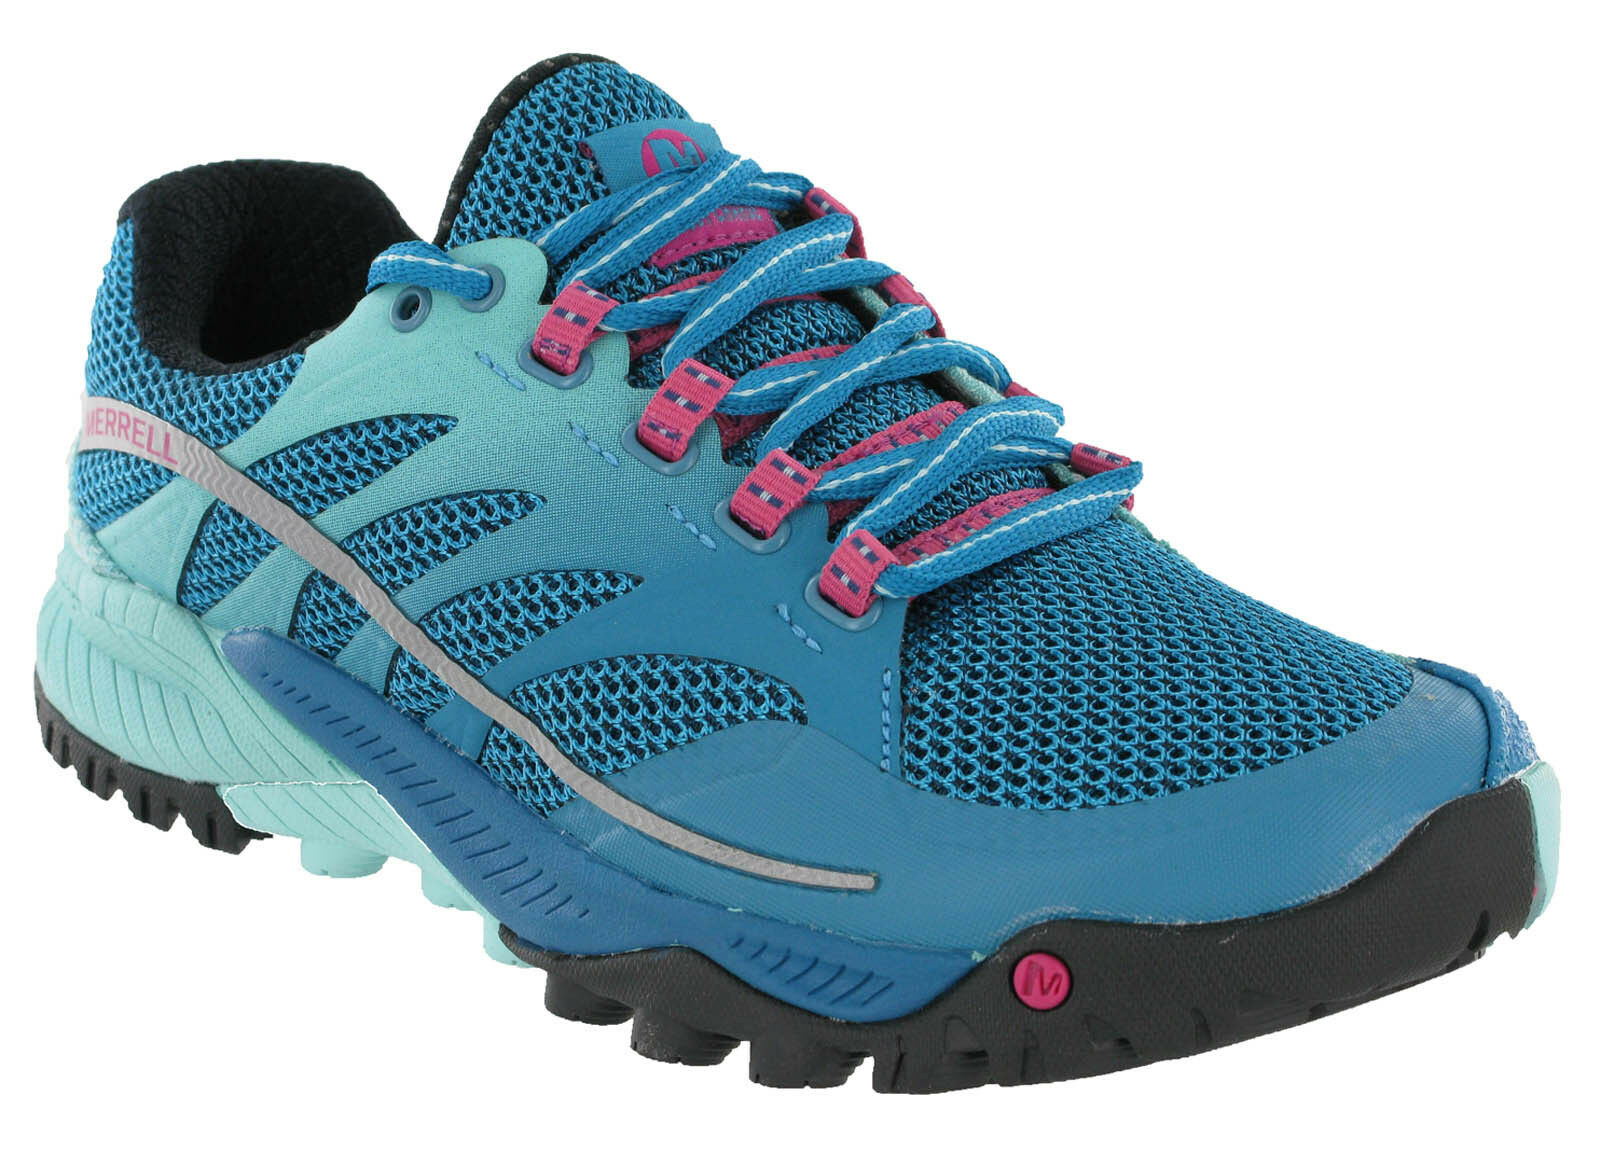 78381c9f65 Merrell All Out Charge Trainers Womens Sports Mesh Hiking Trail Shoes J03960